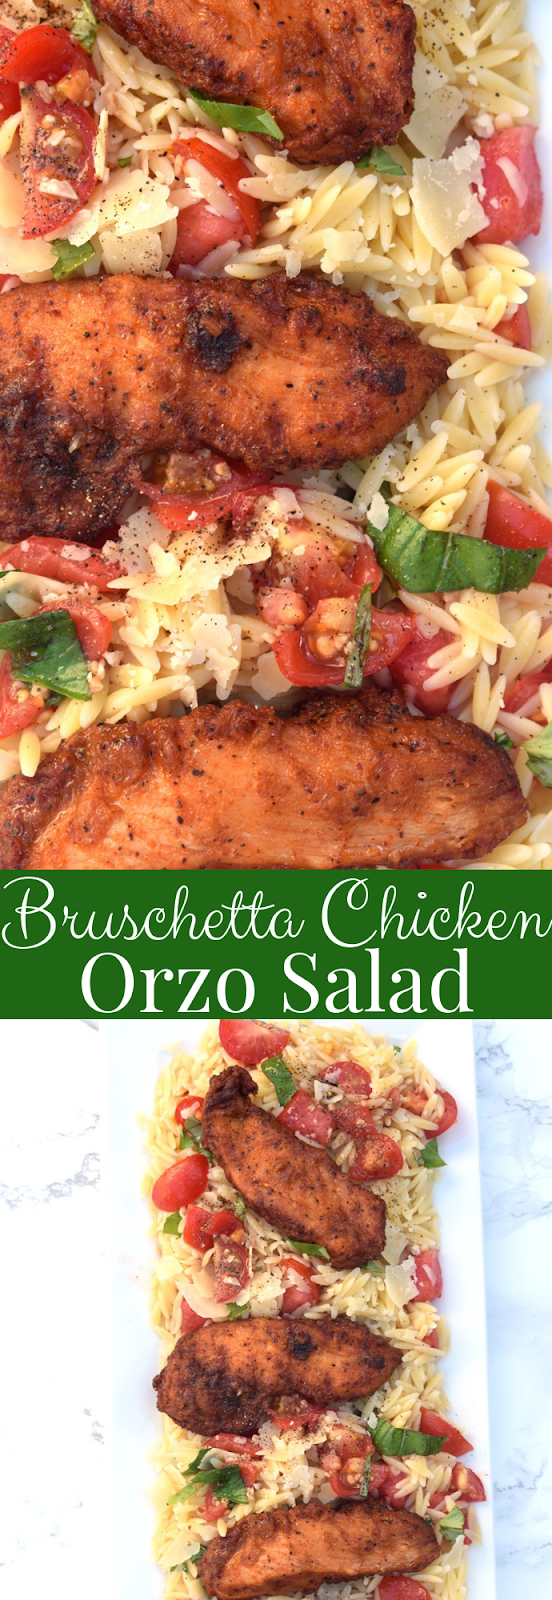 Bruschetta chicken orzo salad recipe